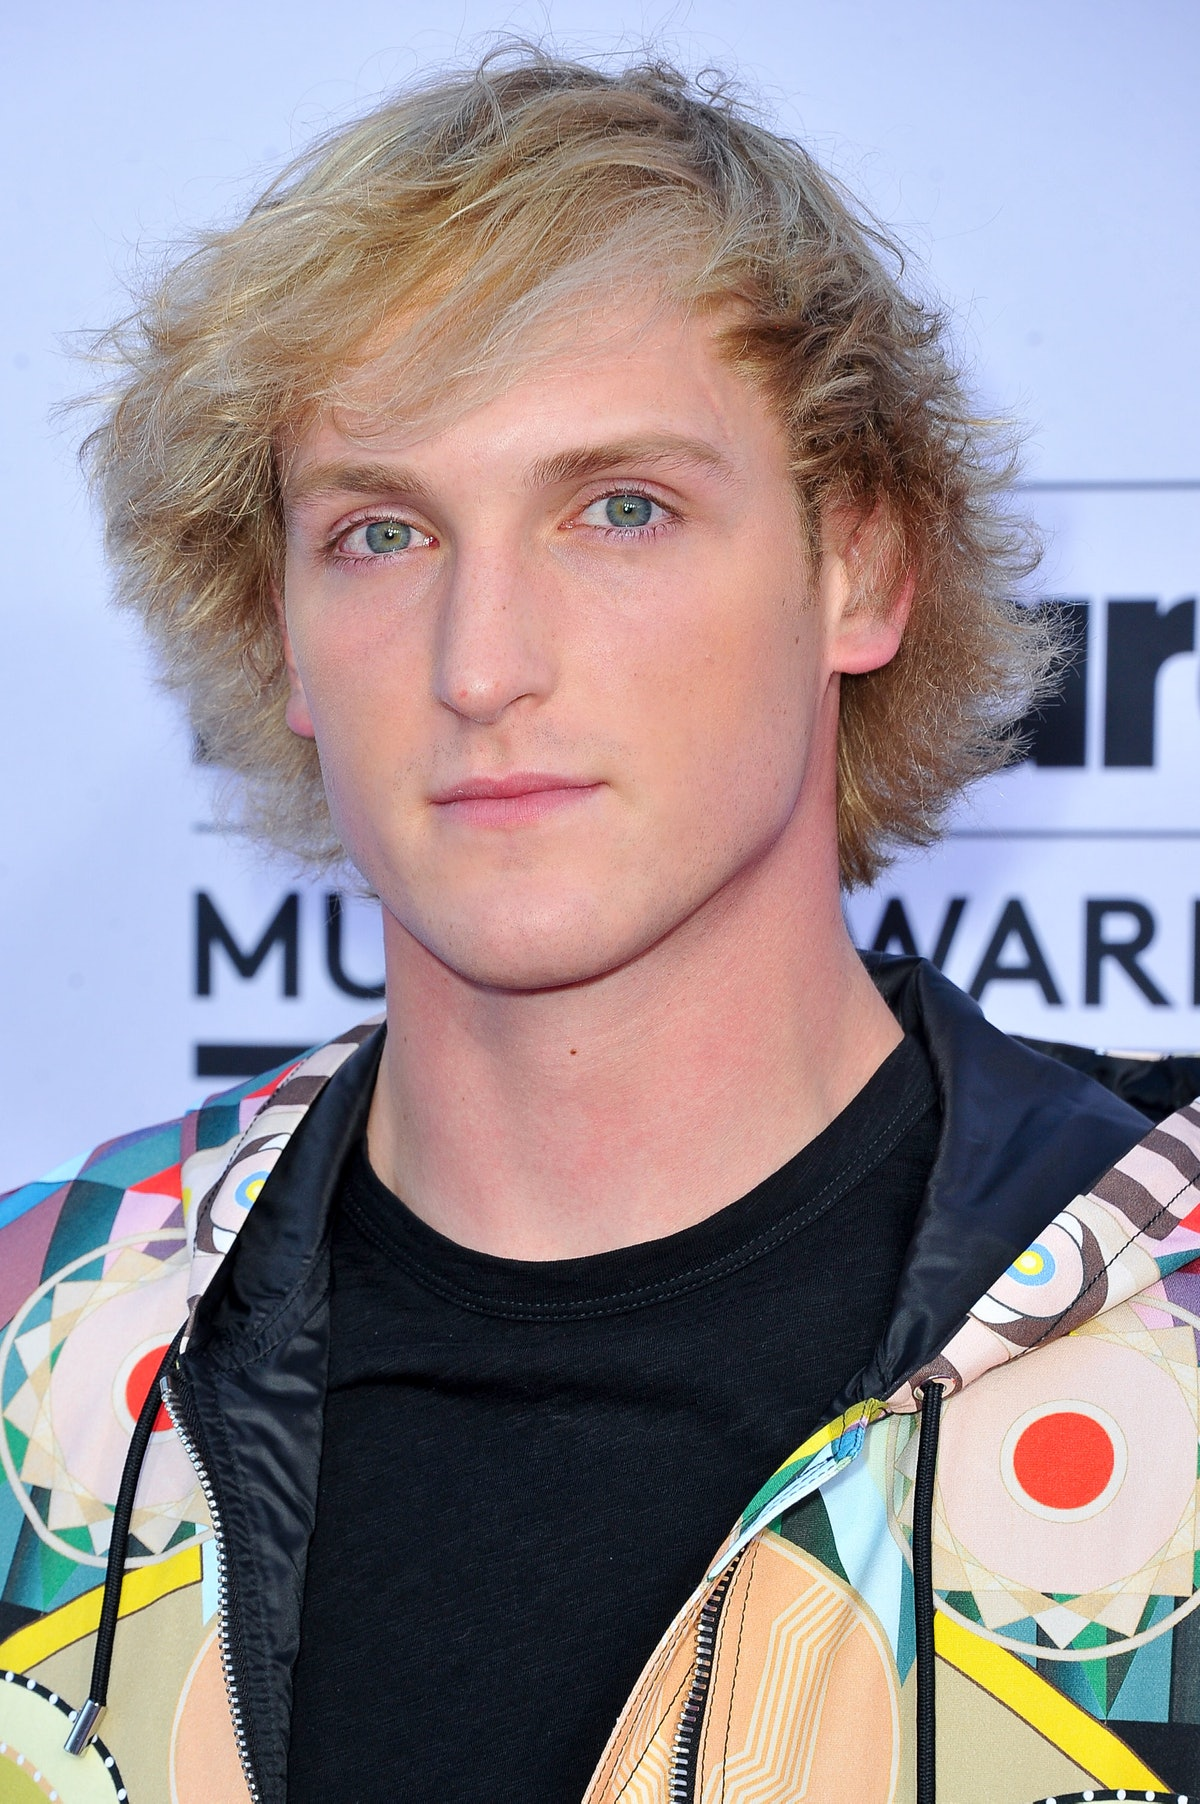 Logan Paul named one of the most ridiculous (bad) Aries celebrities.